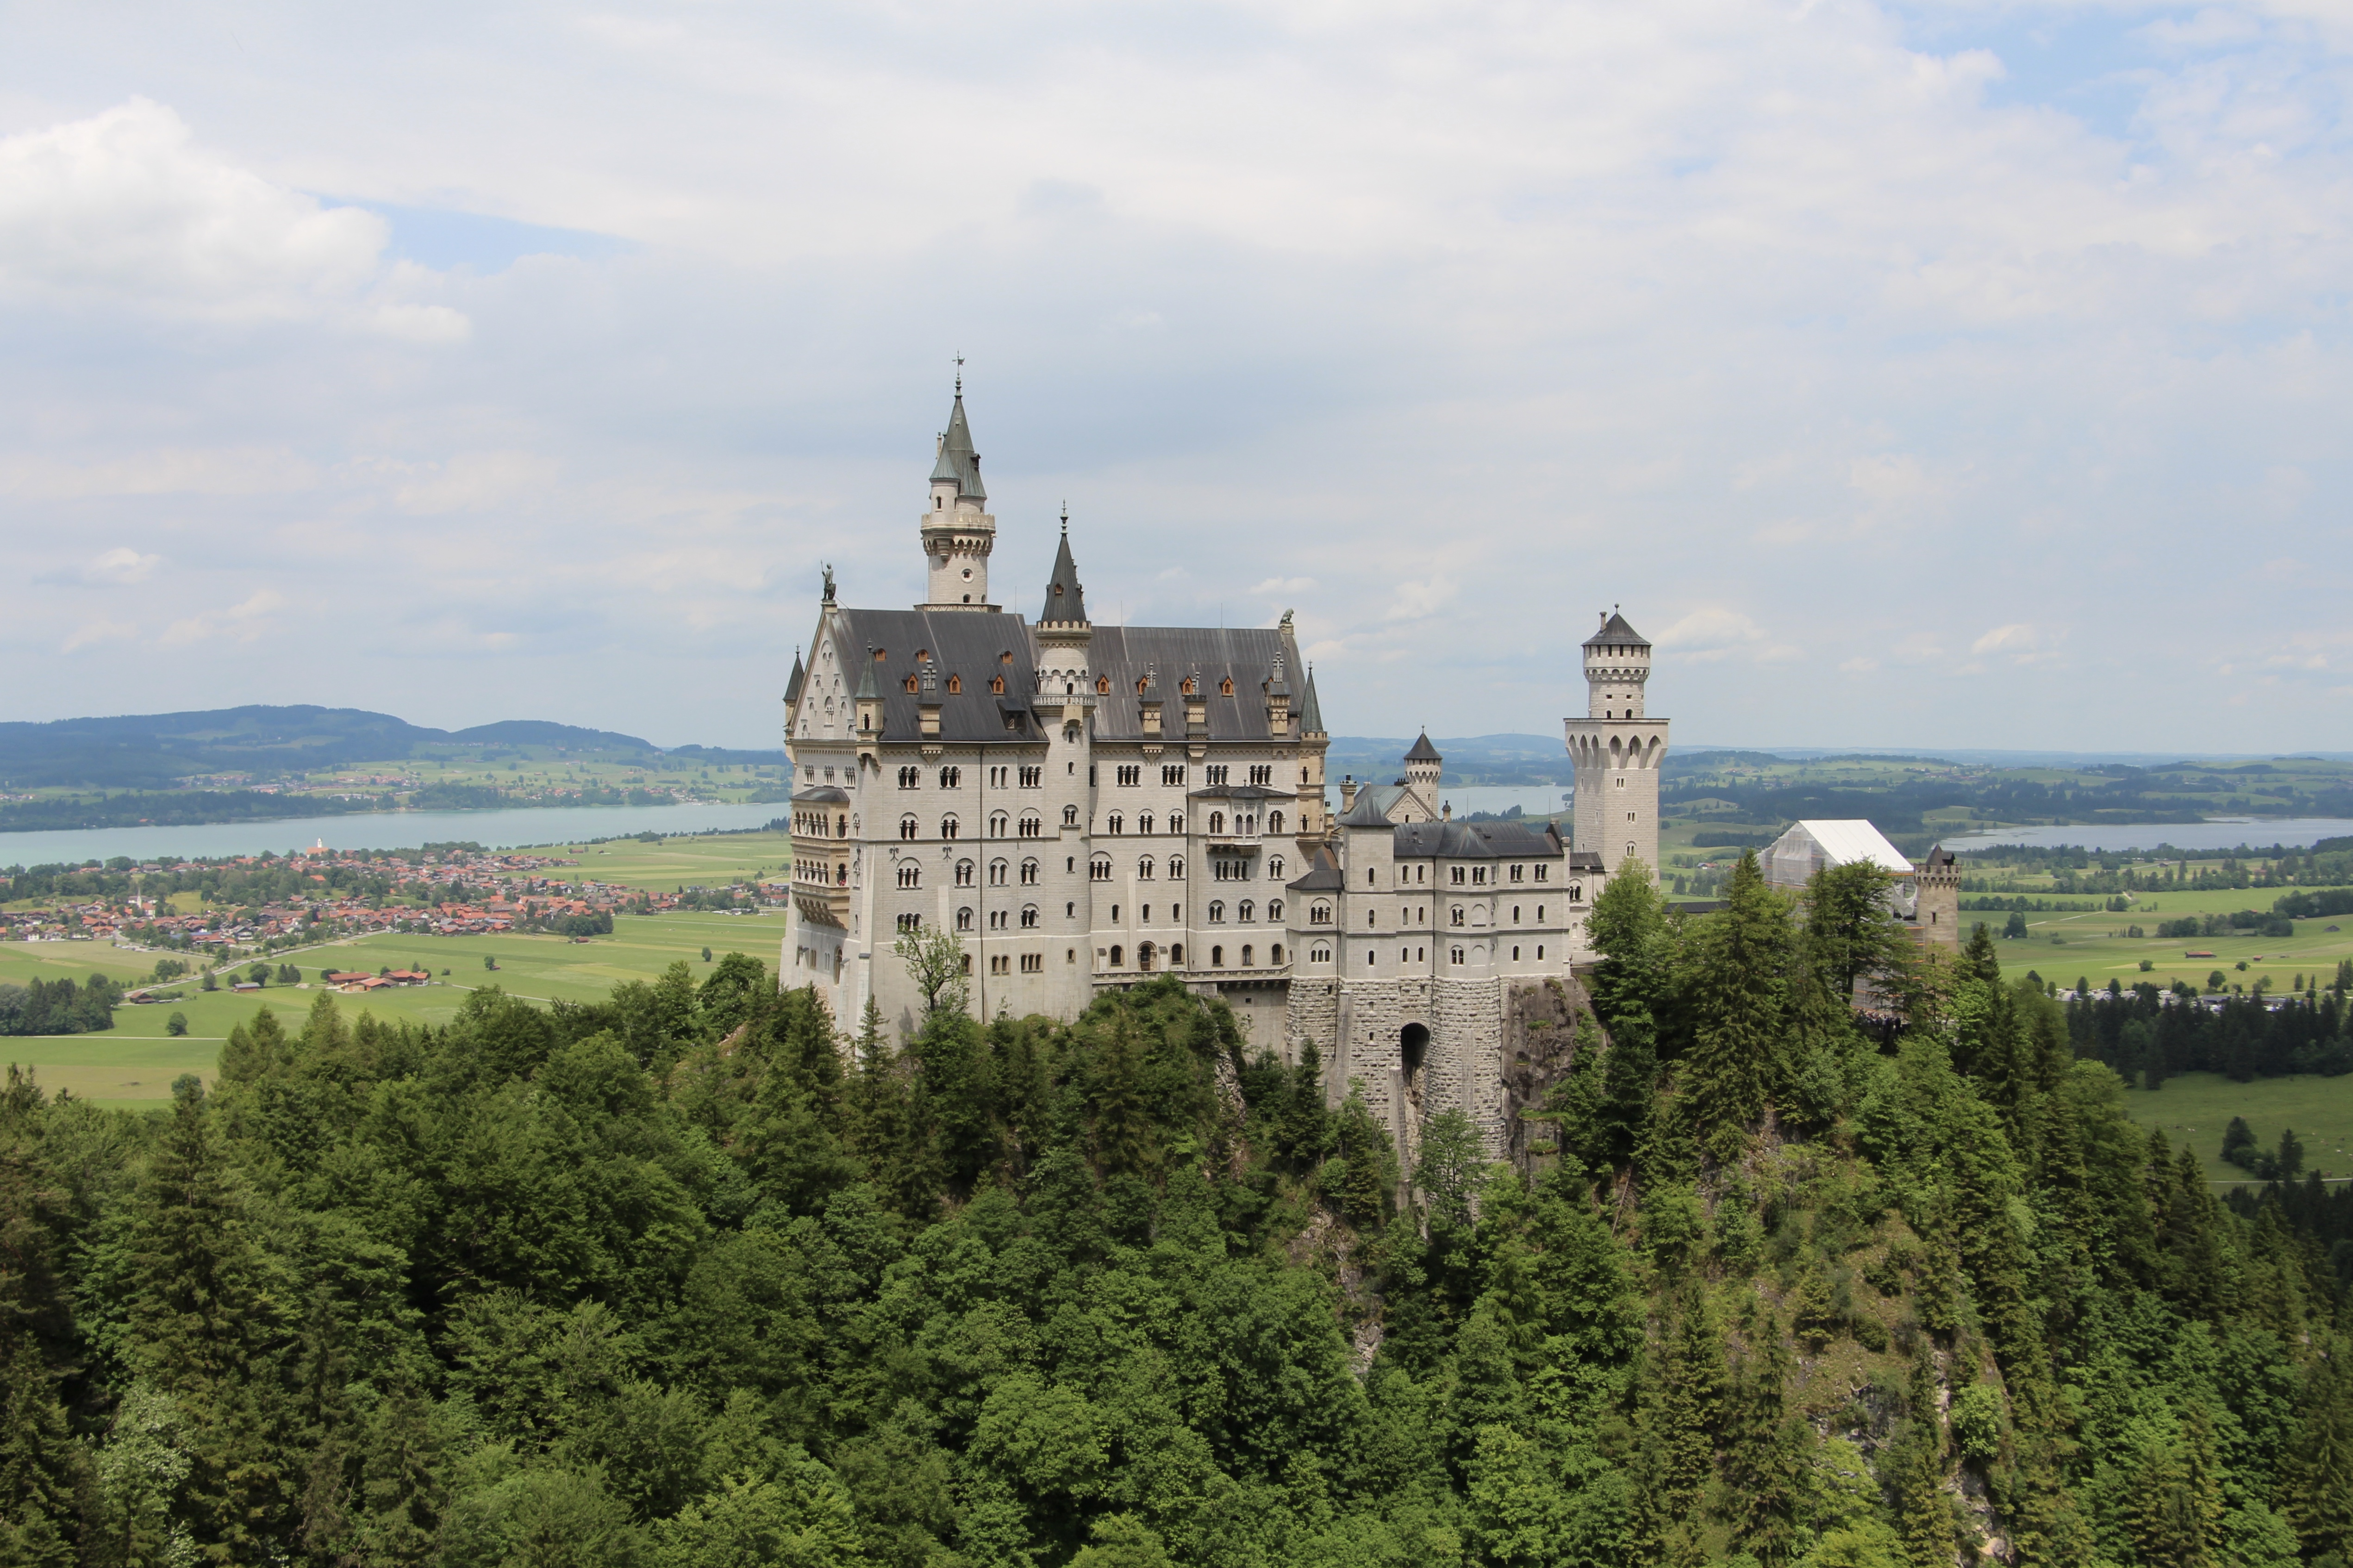 A Day Trip from Munich - Visiting Neuschwanstein Castle in ...